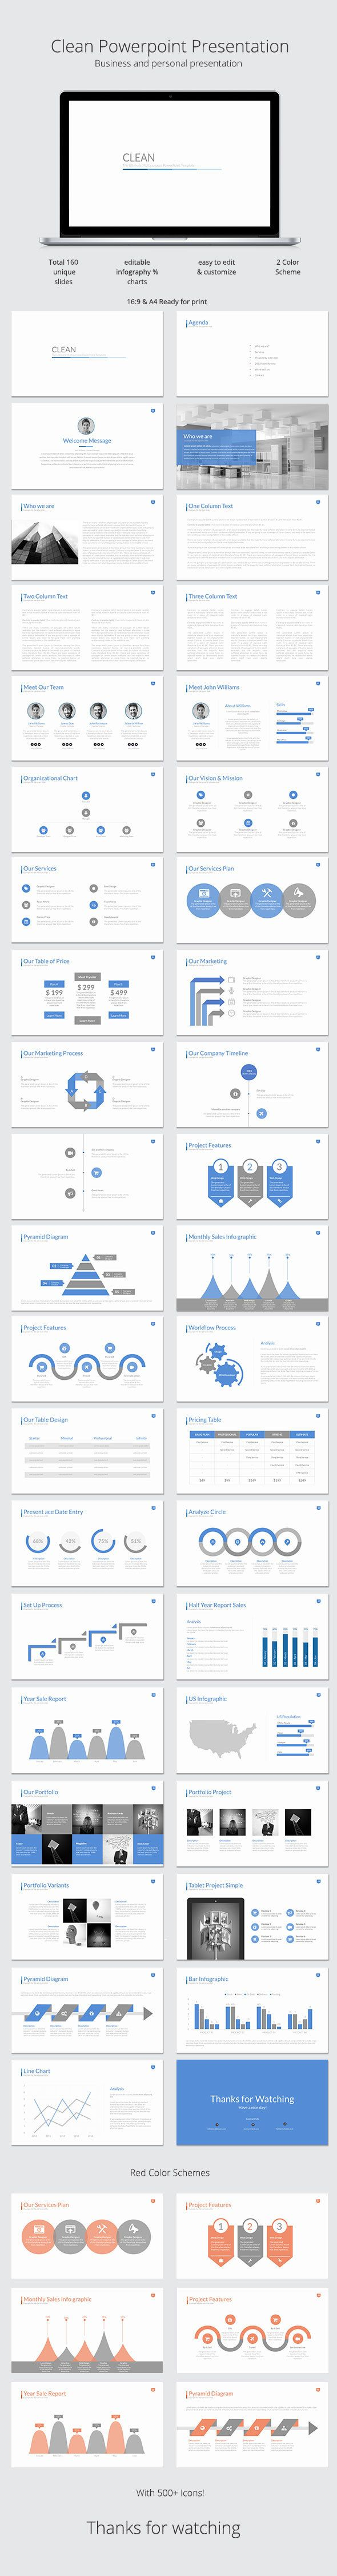 Coolmathgamesus  Inspiring  Ideas About Powerpoint Presentations On Pinterest With Excellent Clean Powerpoint Template With Beautiful Powerpoint Lessons Also Mla Format Powerpoint In Addition Land Navigation Powerpoint And Powerpoint Presentation Template As Well As Edit Background Graphics Powerpoint Additionally Powerpoint Slide Background From Pinterestcom With Coolmathgamesus  Excellent  Ideas About Powerpoint Presentations On Pinterest With Beautiful Clean Powerpoint Template And Inspiring Powerpoint Lessons Also Mla Format Powerpoint In Addition Land Navigation Powerpoint From Pinterestcom